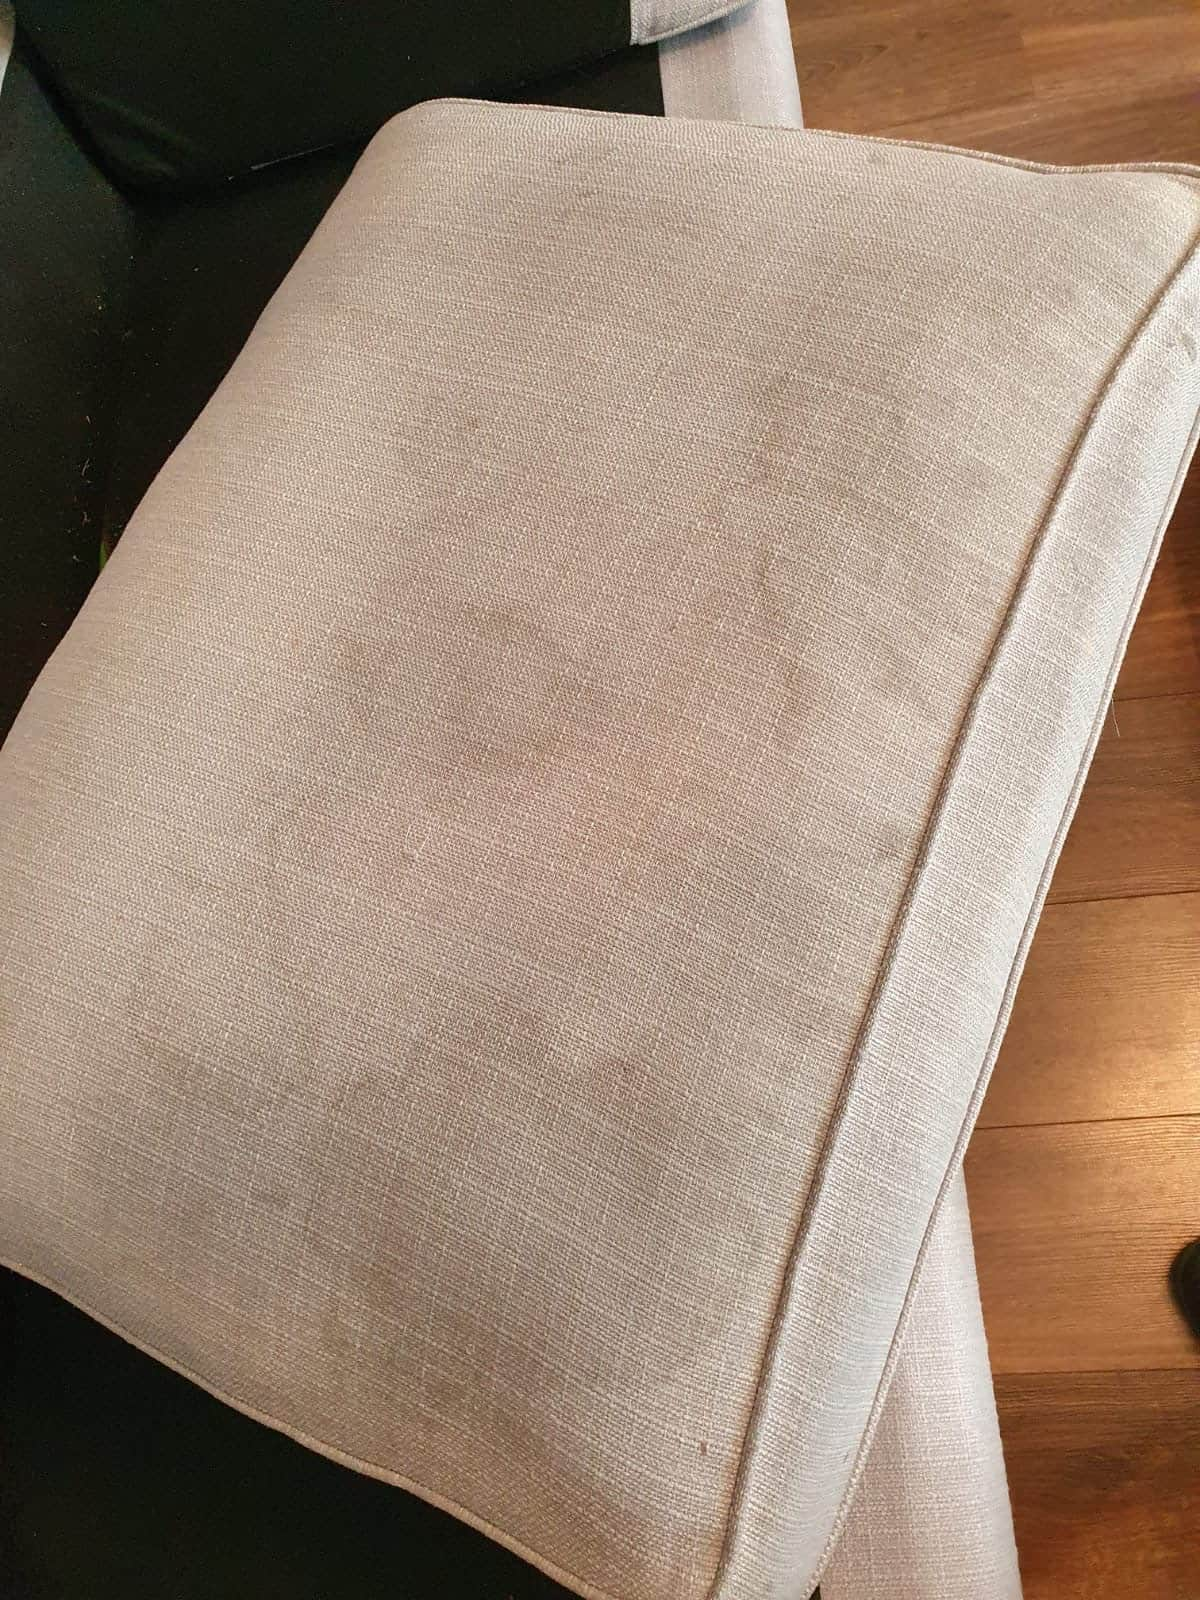 Armchair Upholstery Cleaning